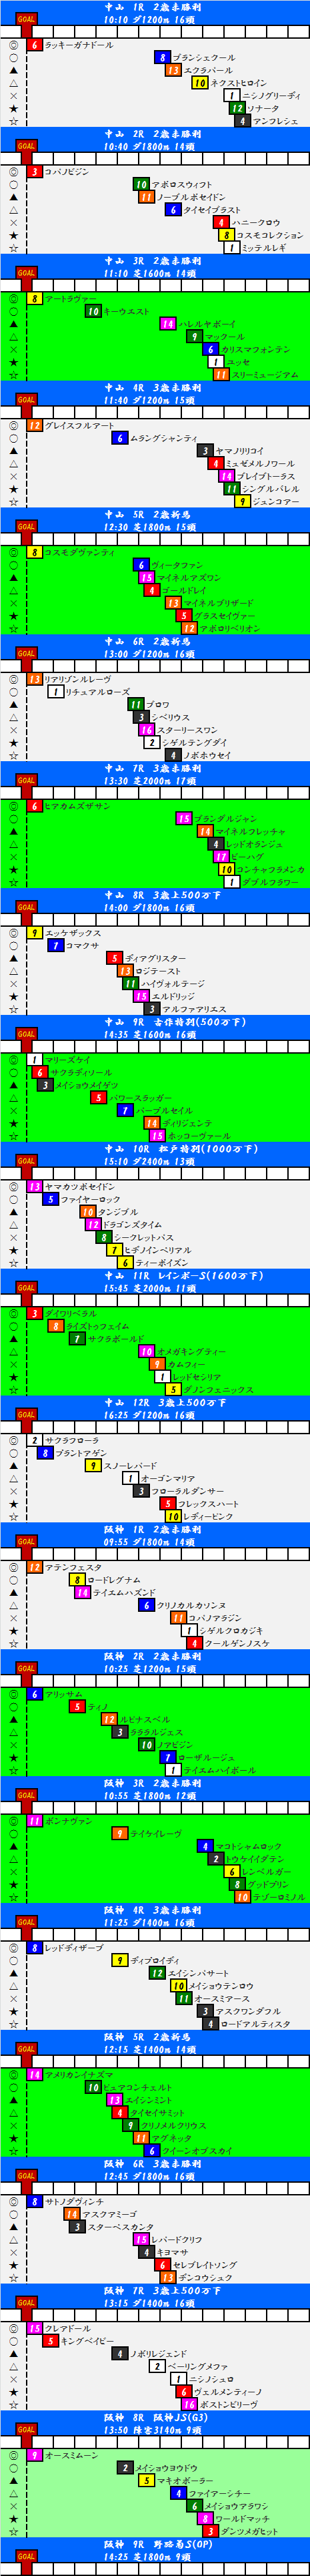 2015091901.png